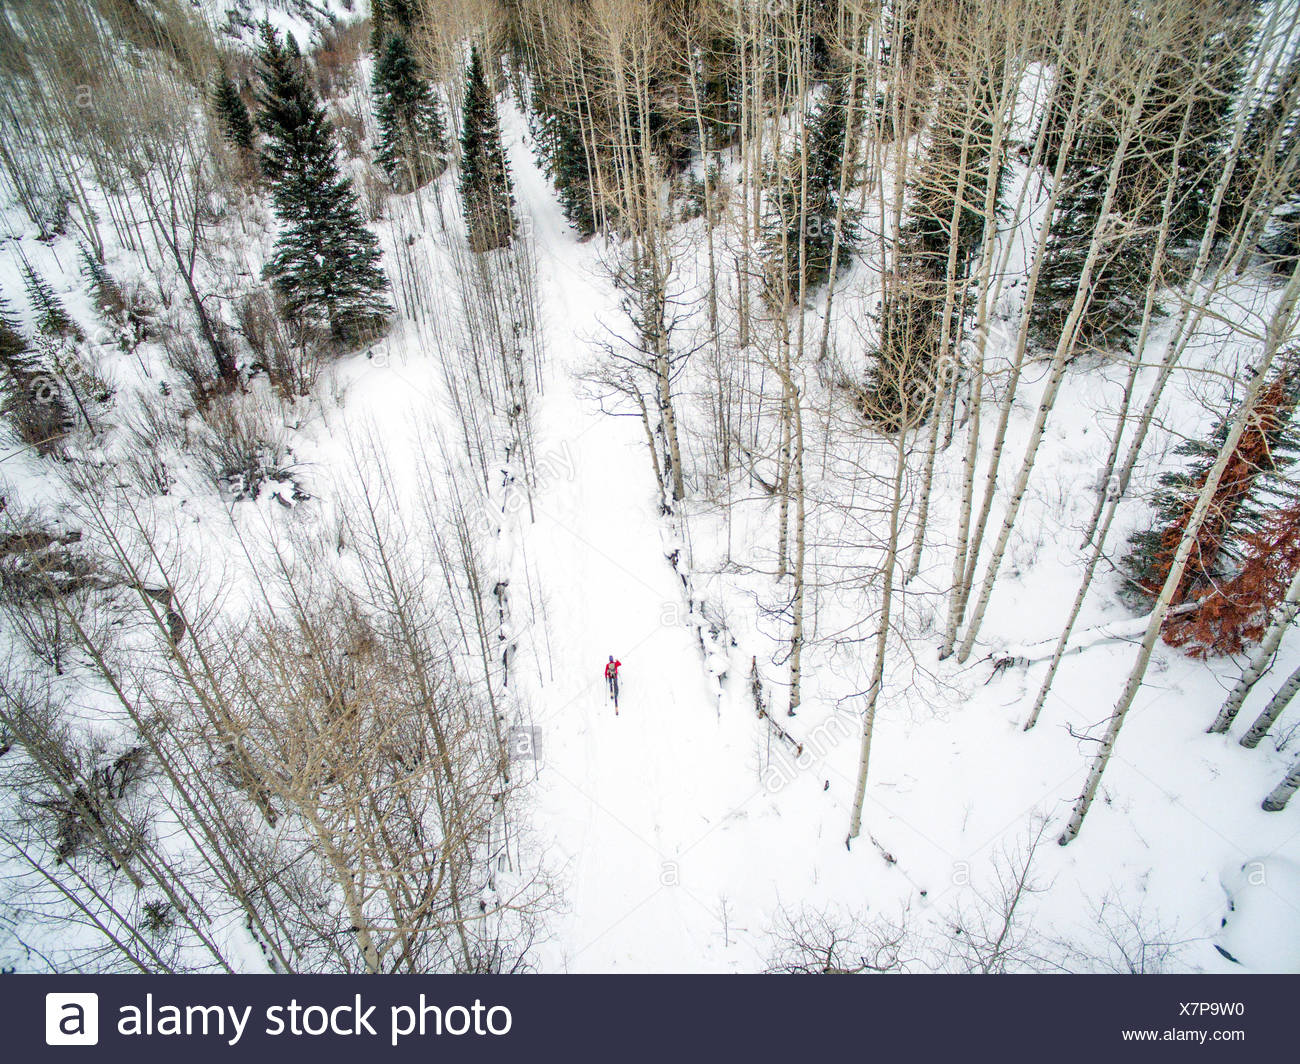 A cross country skier photographed using a drone. - Stock Image